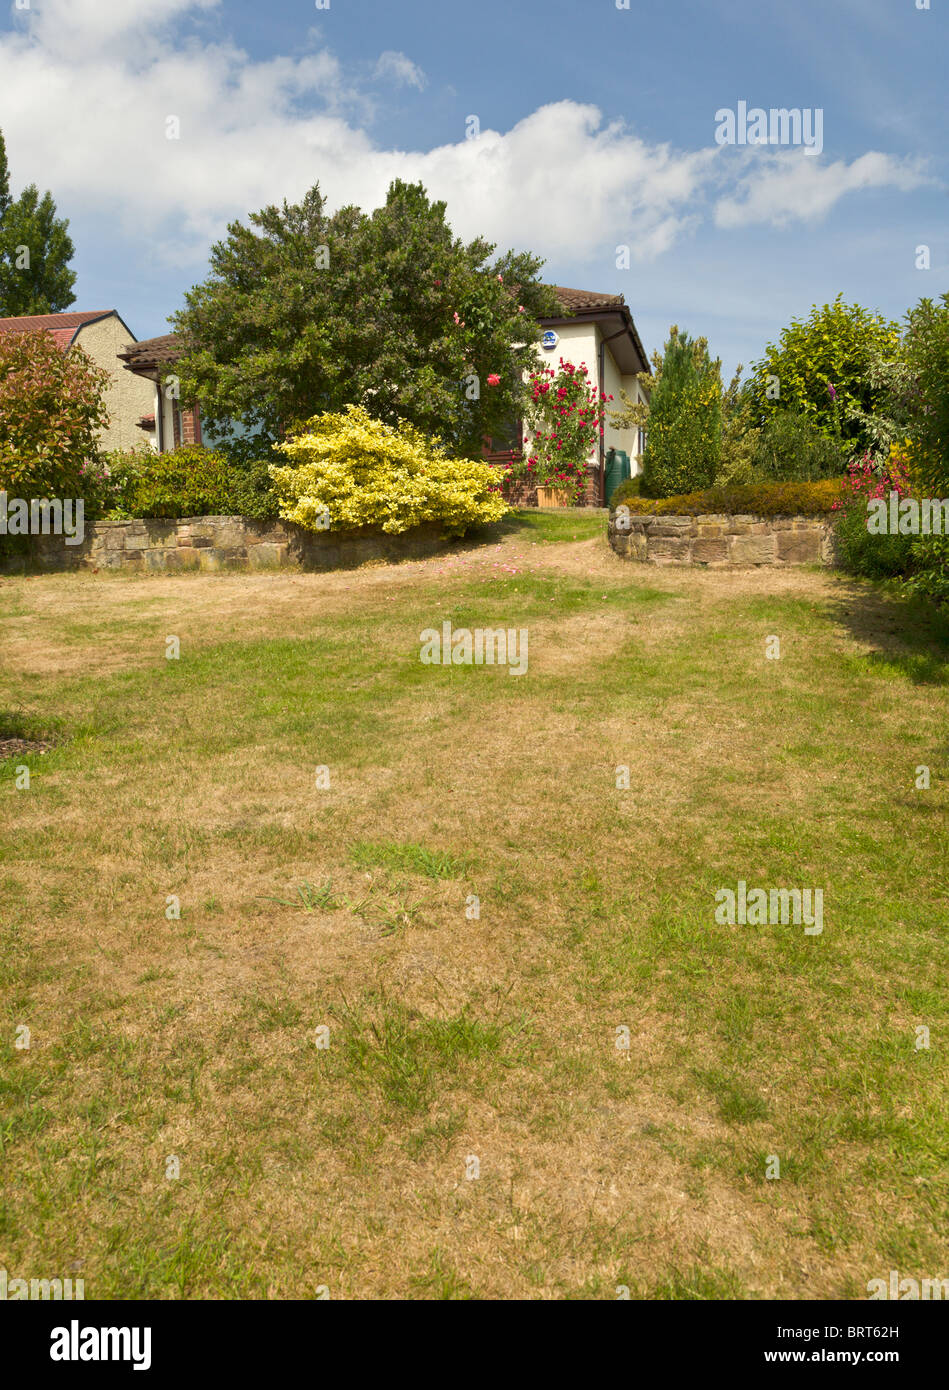 Parched lawn through lack of rain, England - Stock Image